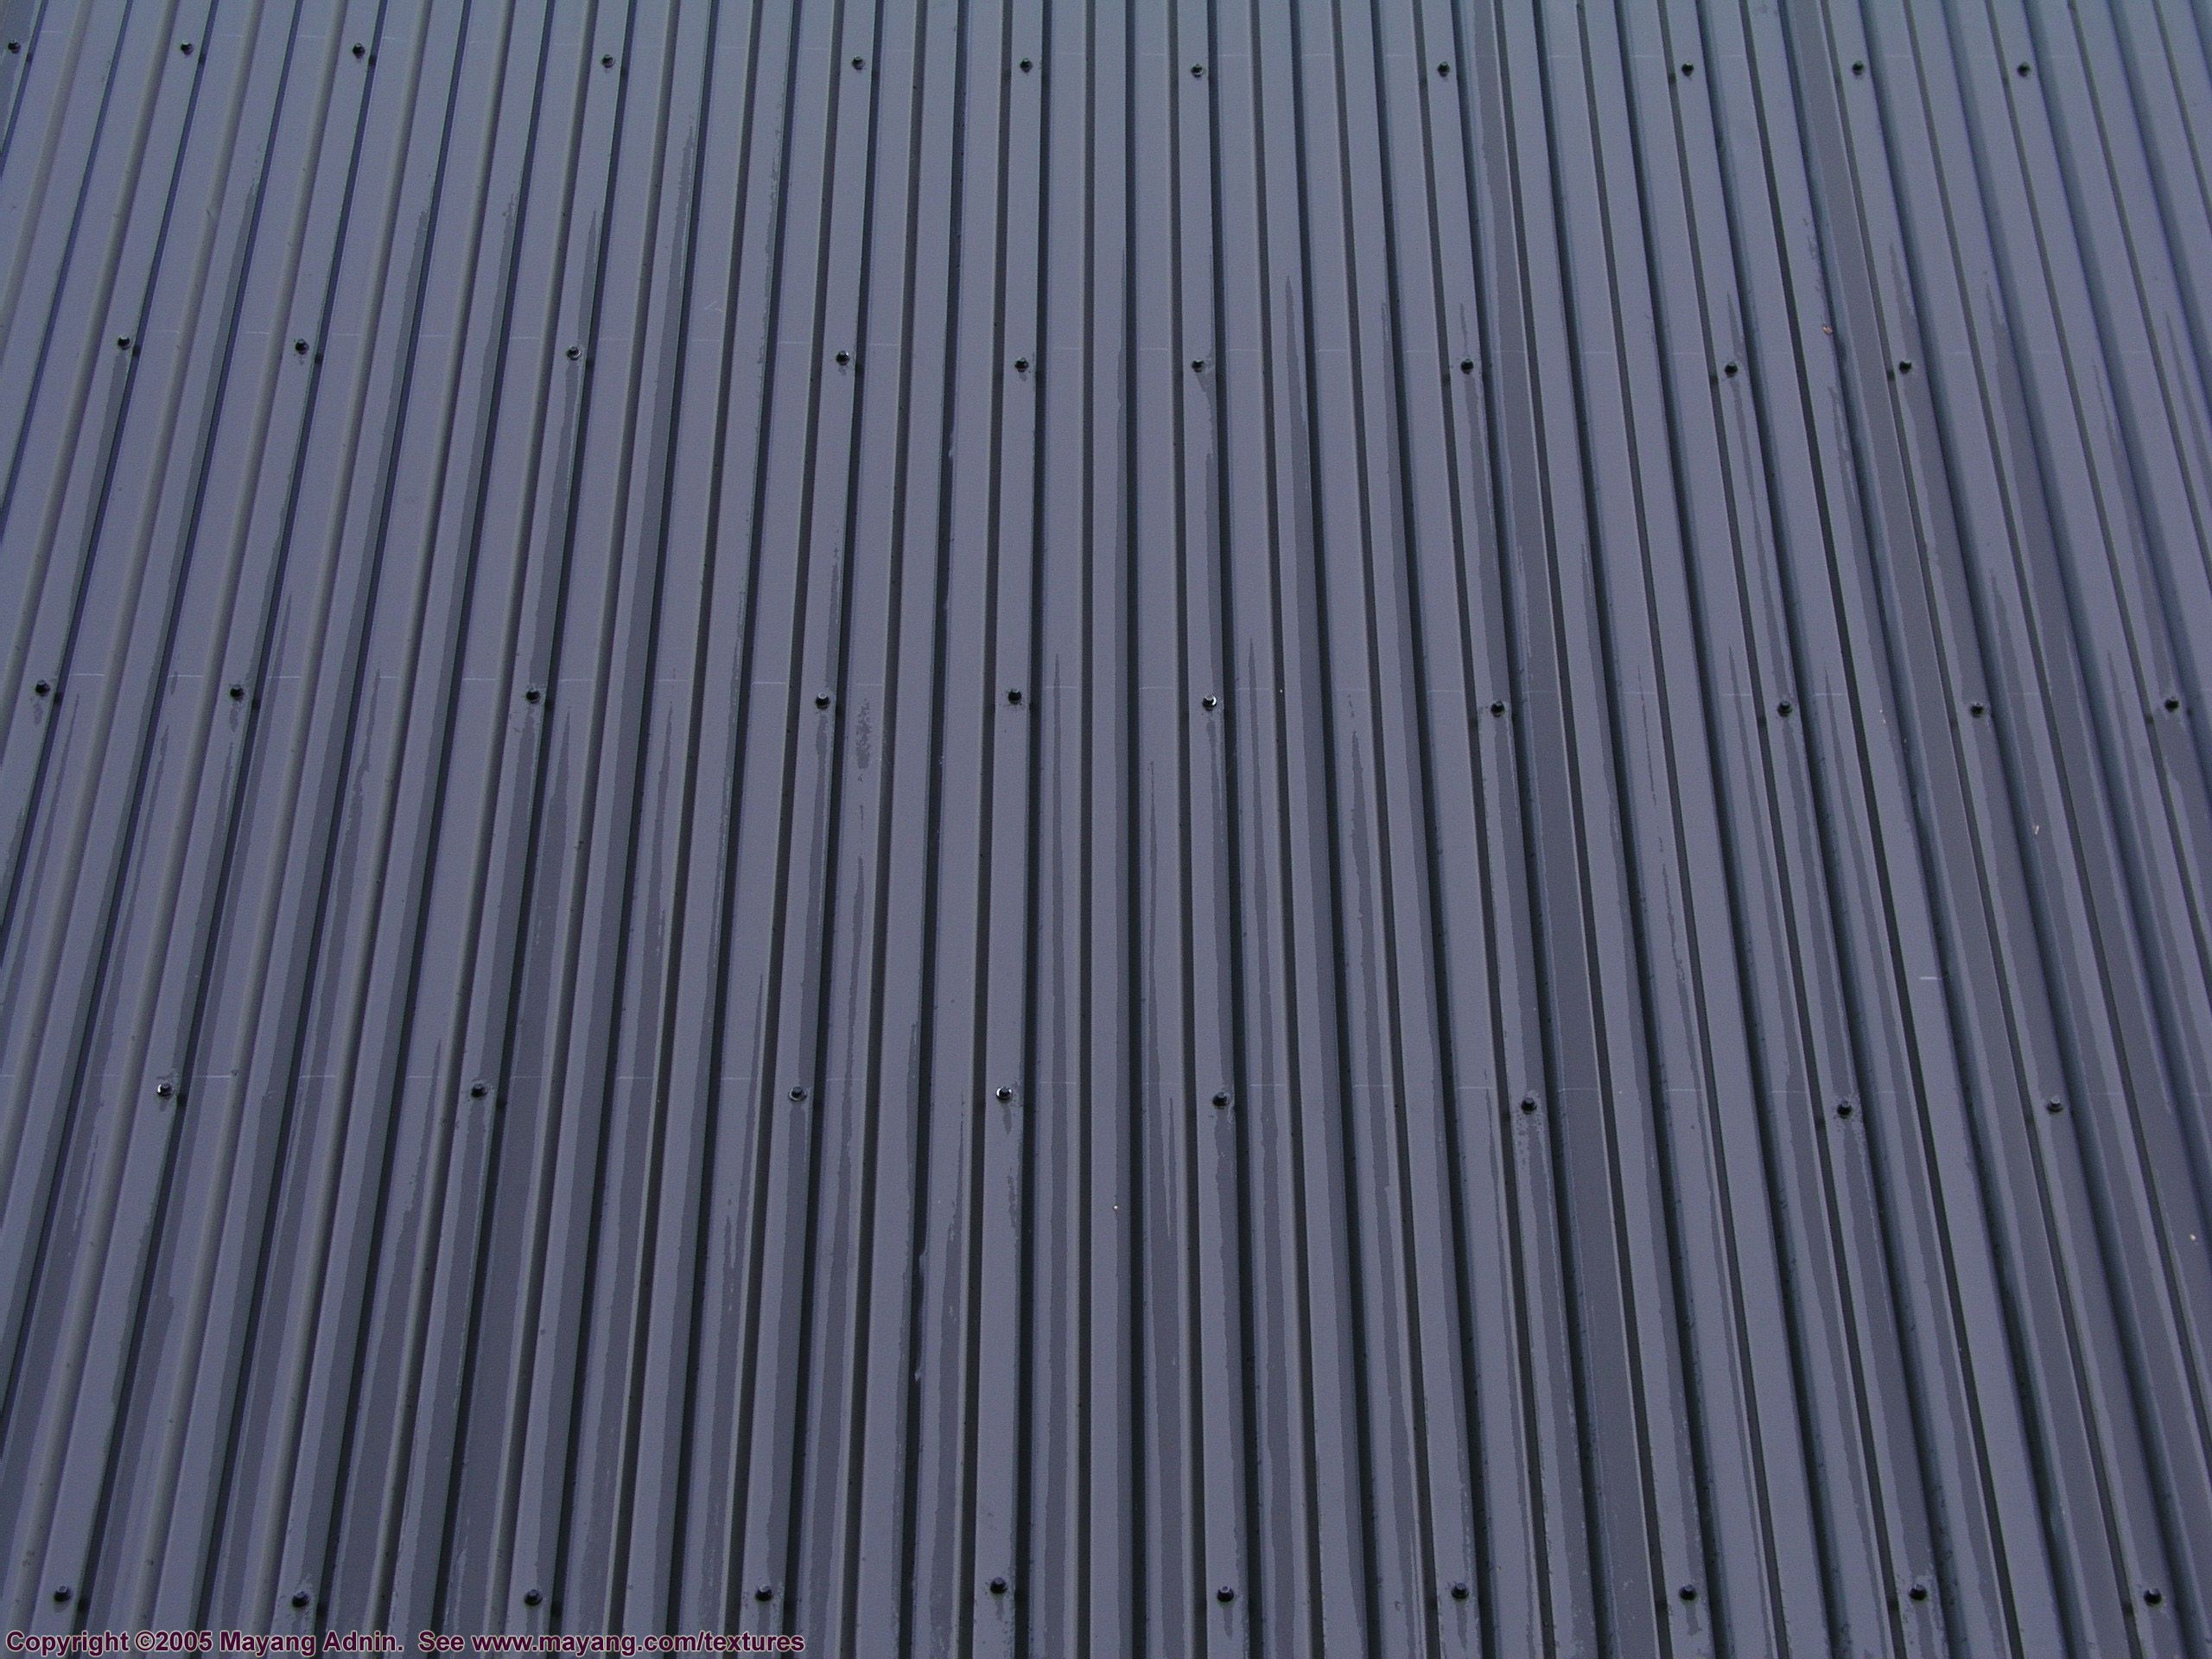 Contemporary Metal Roofing Of Corrugated Metal Roofing Free Picture Of Corrugated Metal Roofing Metal Roof Corrugated Metal Fence Corrugated Metal Siding